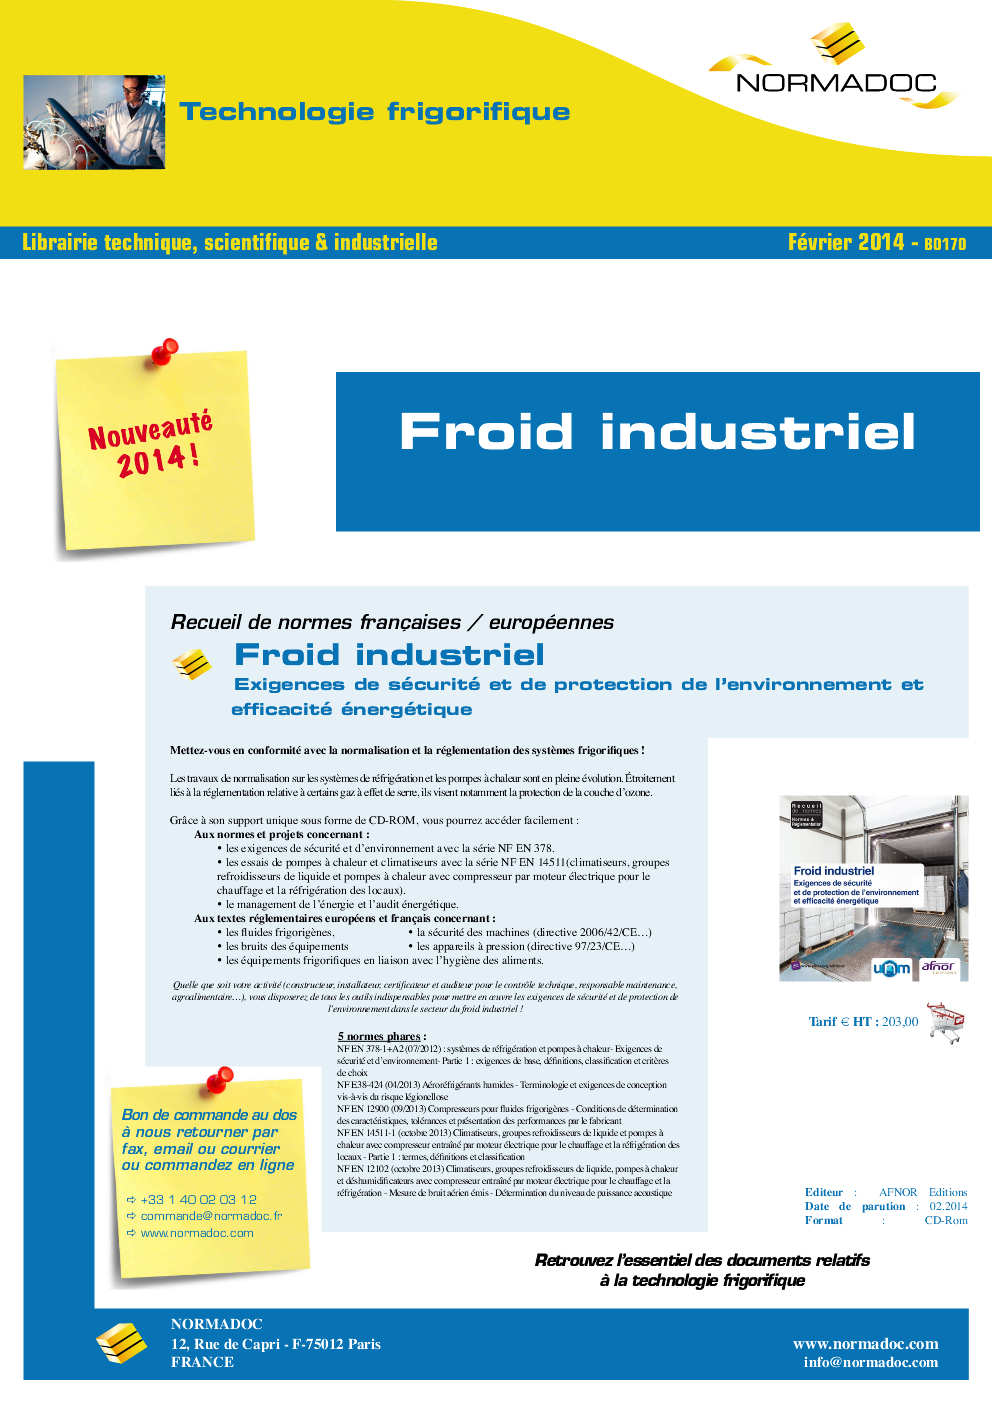 Industrial Refrigeration / Froid Industriel